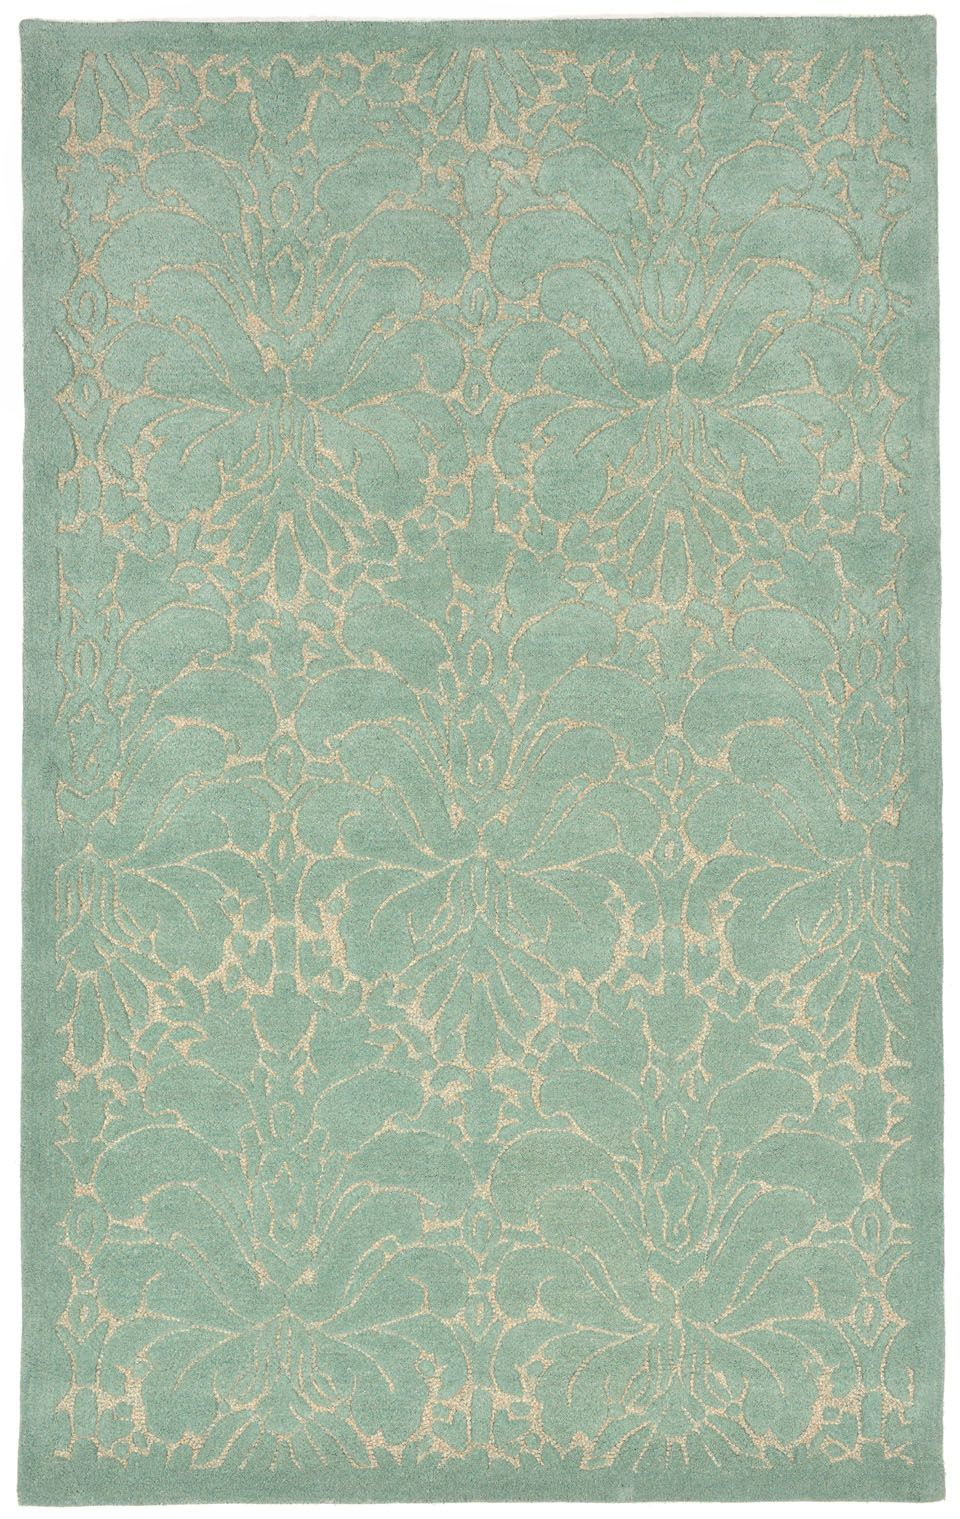 Your Source For The Finest Rugs Home Decor Fashion Accessories Aqua Rug Damask Rug Area Rugs